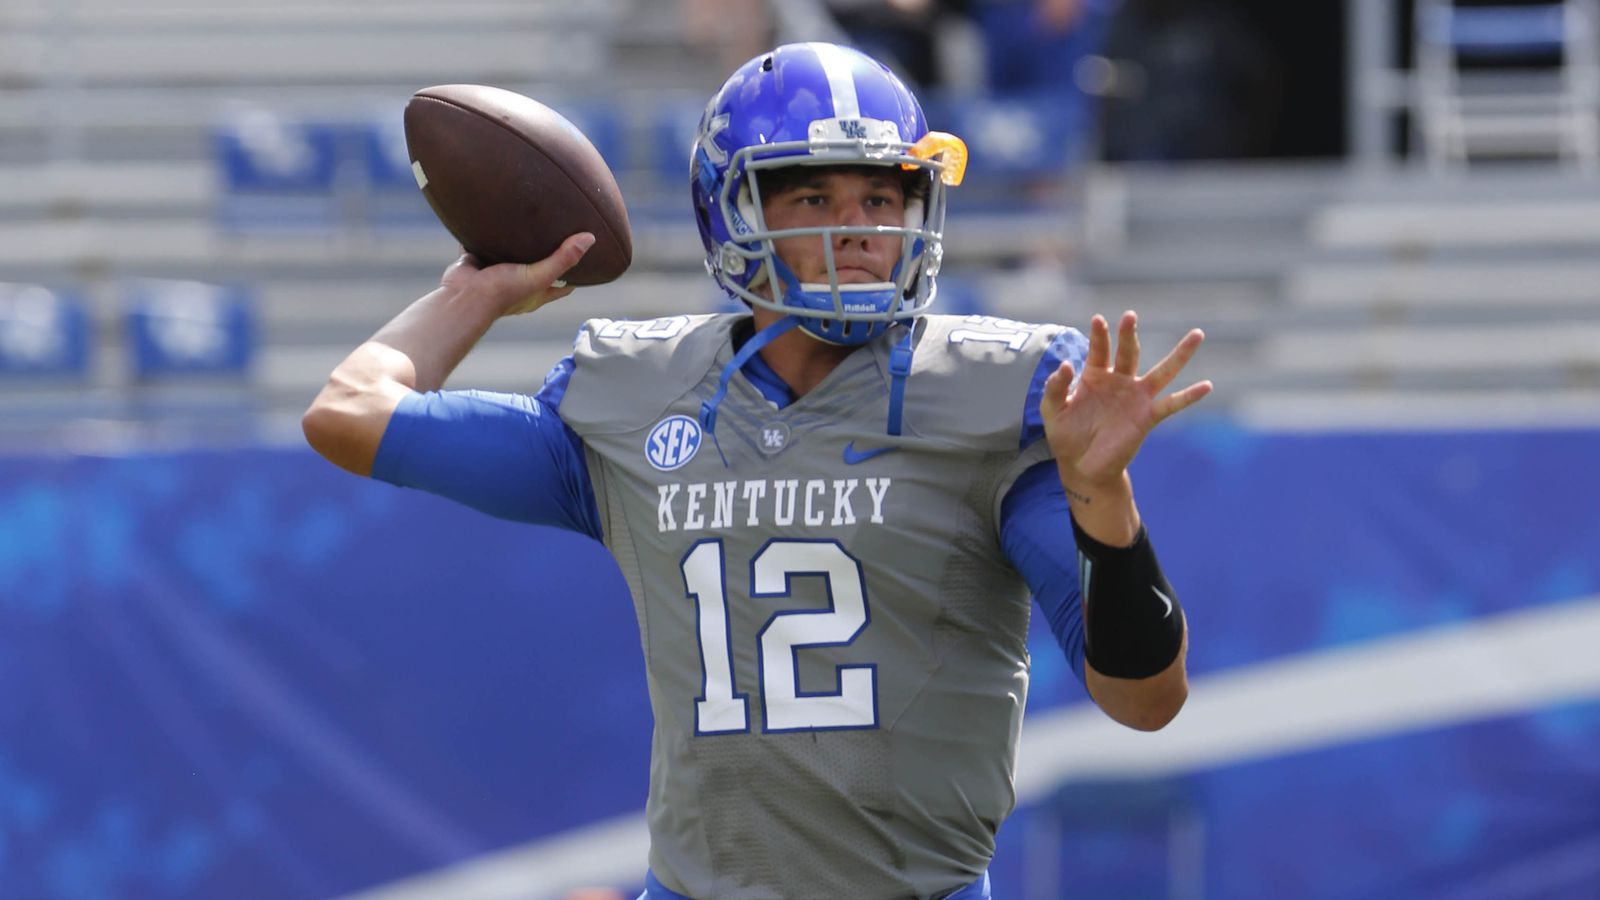 Kentucky Basketball And Football Getting New Uniforms: Reese Phillips Leaving Kentucky Wildcats Football